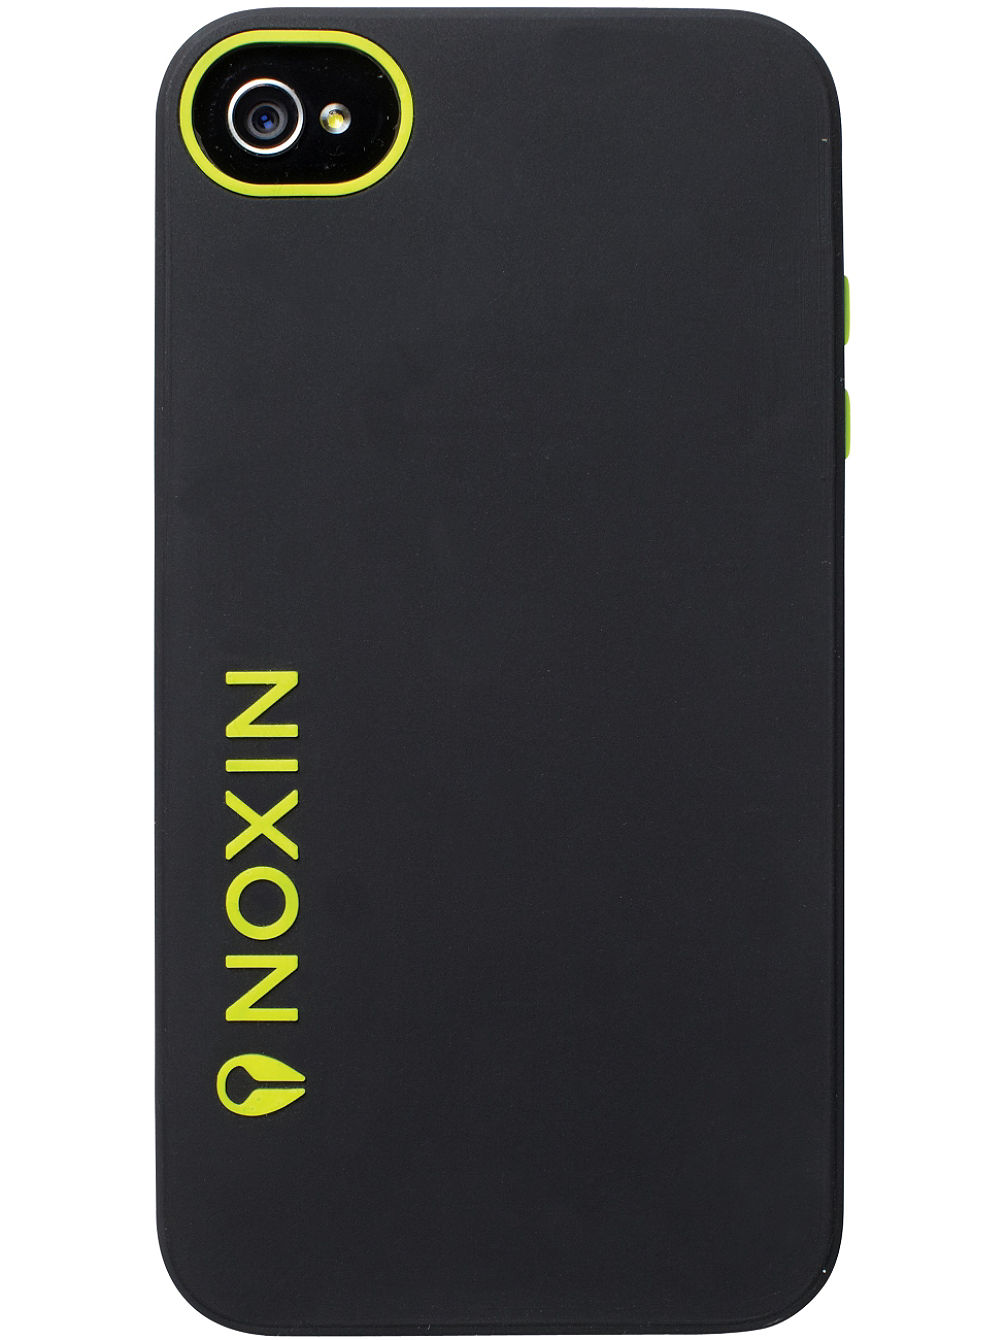 nixon bueller iphone 4 case online kaufen bei blue. Black Bedroom Furniture Sets. Home Design Ideas